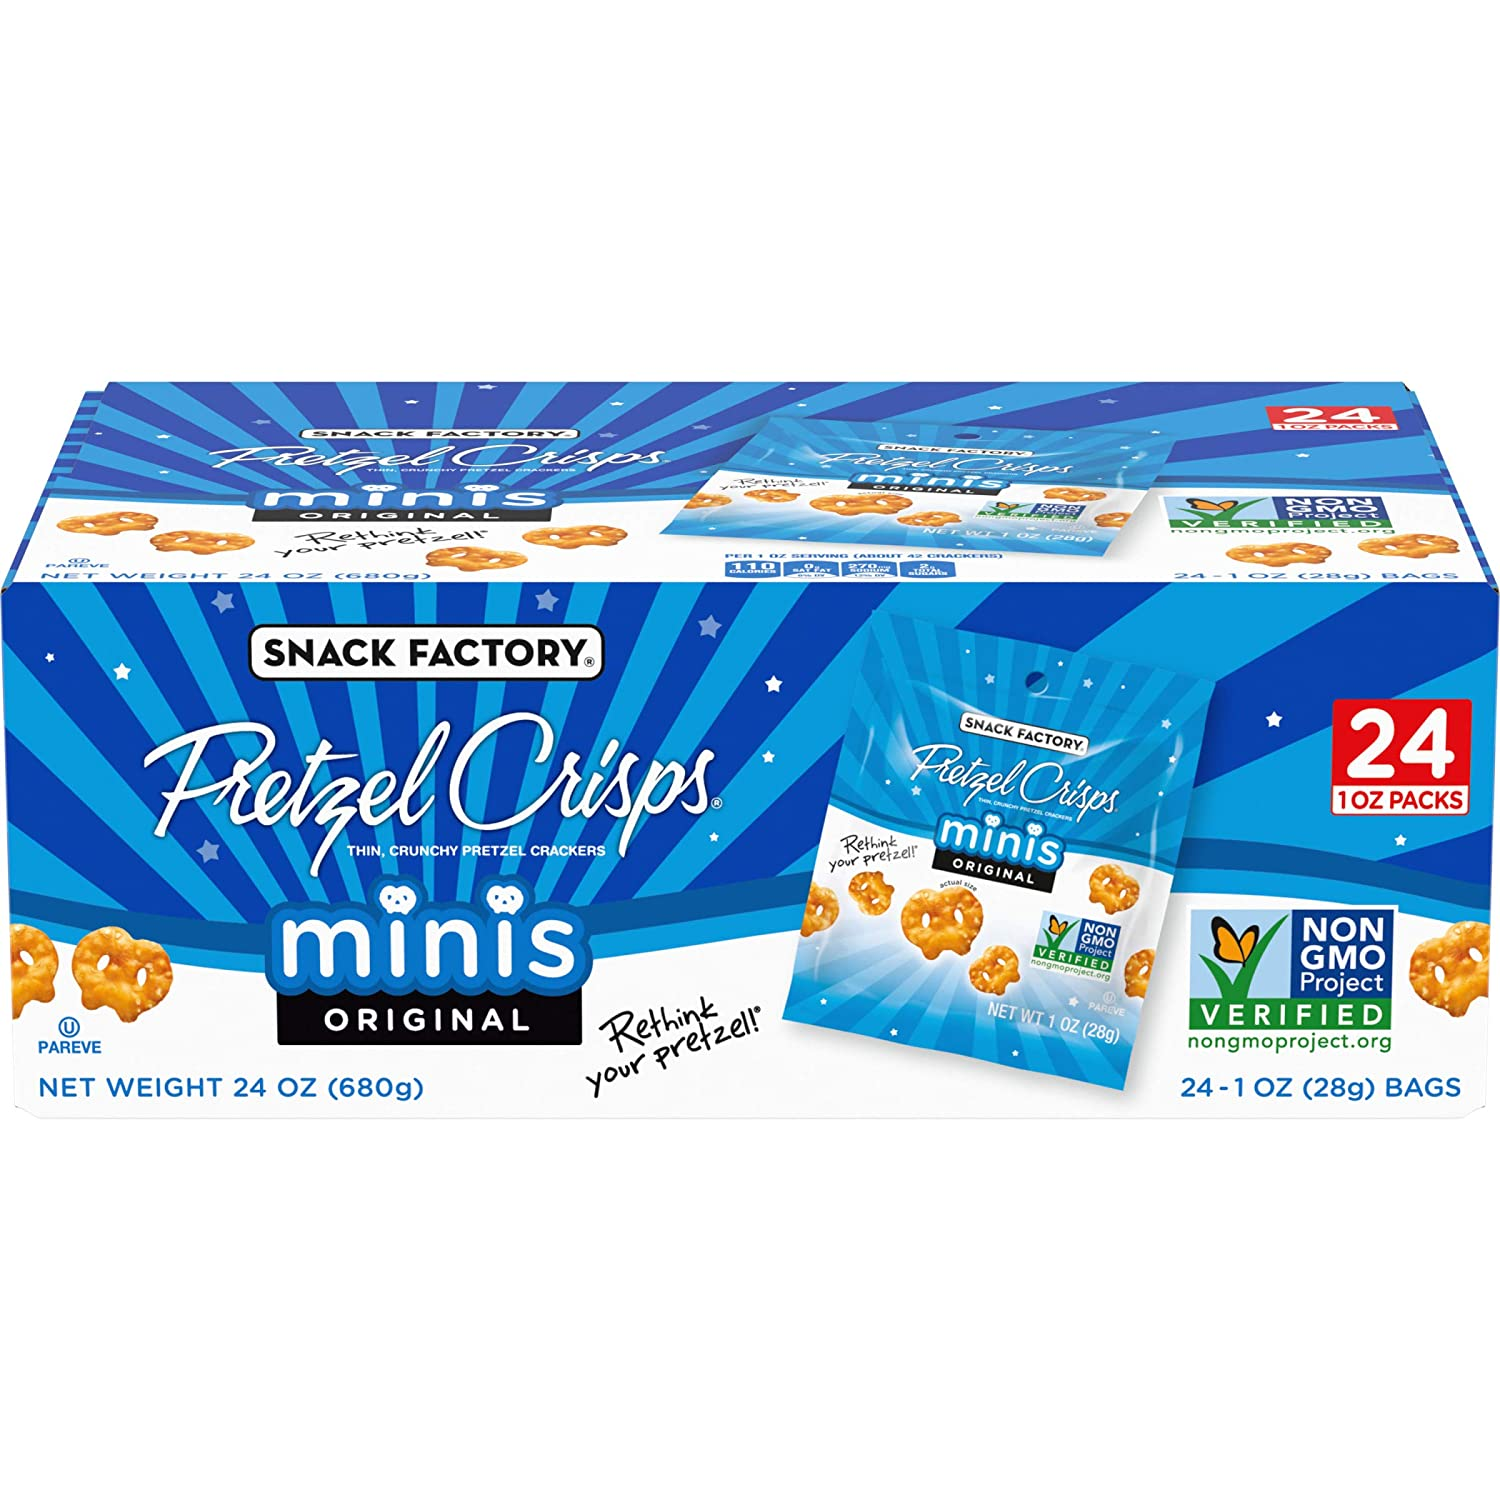 Snack Factory Pretzel Crisps Minis Original Flavor, Snack Packs Individual Sized, 24 Count